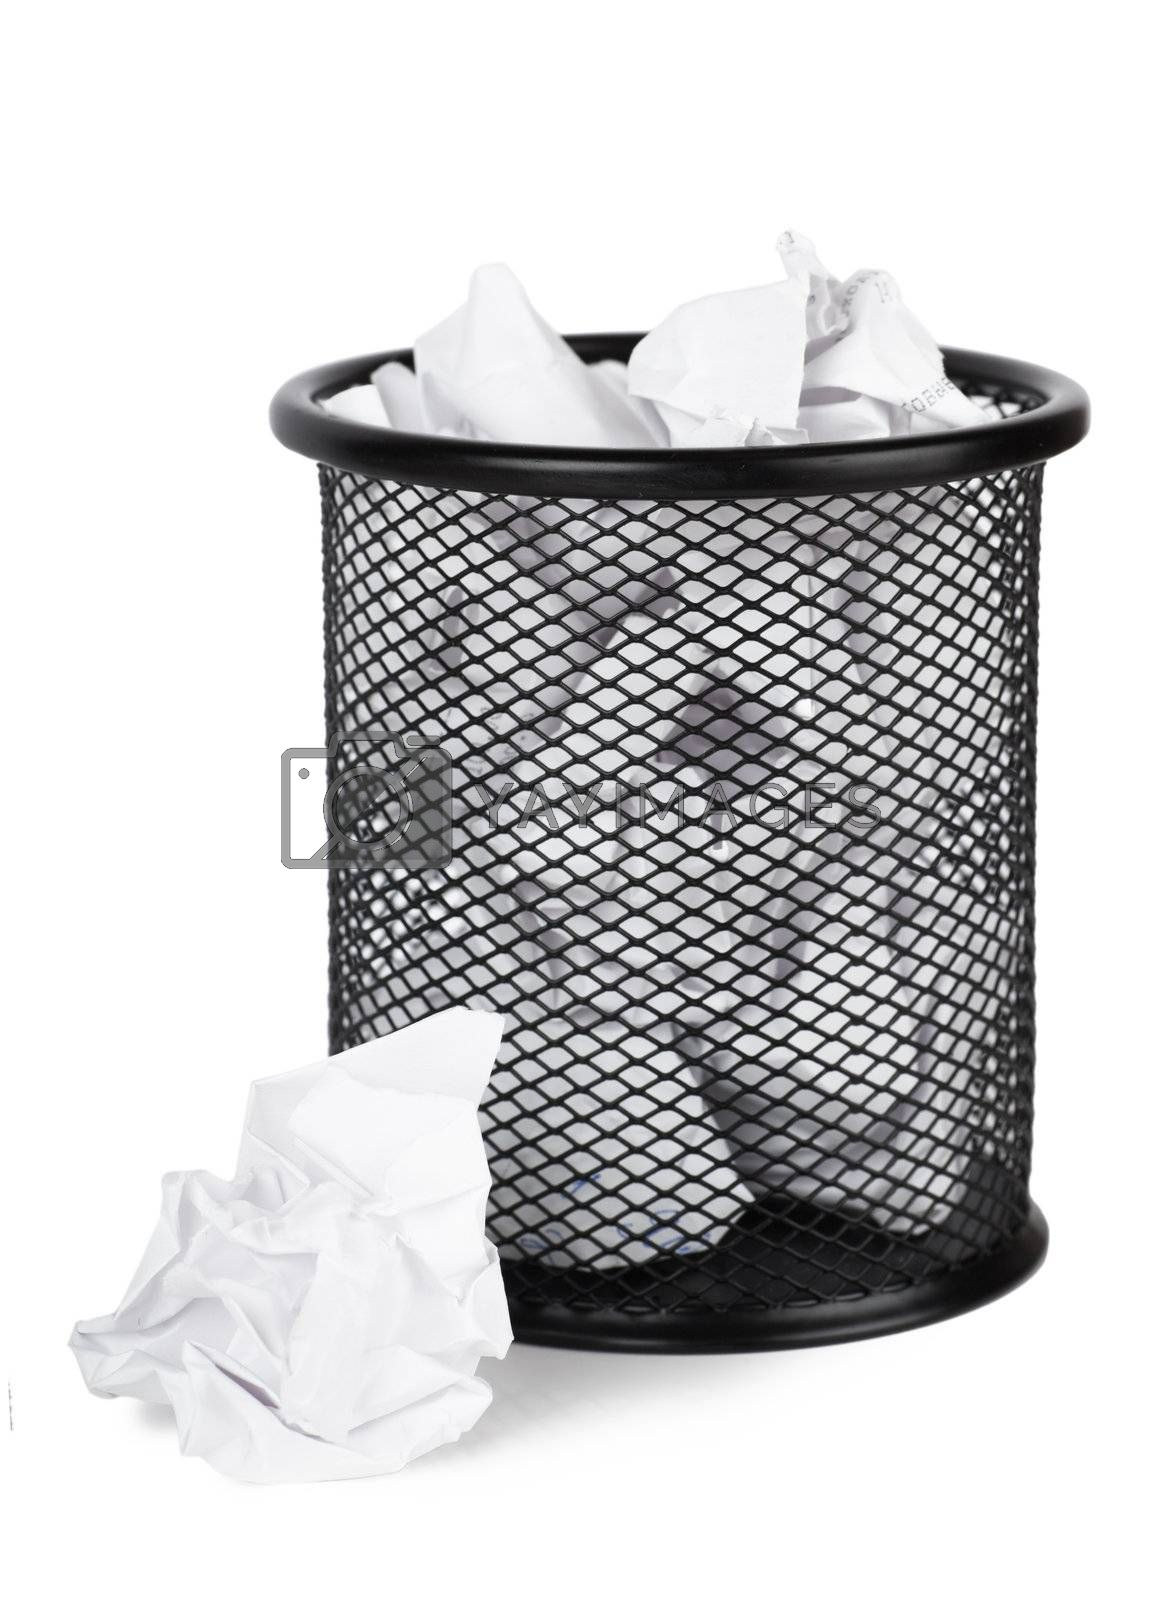 Royalty free image of Trash can by AGorohov